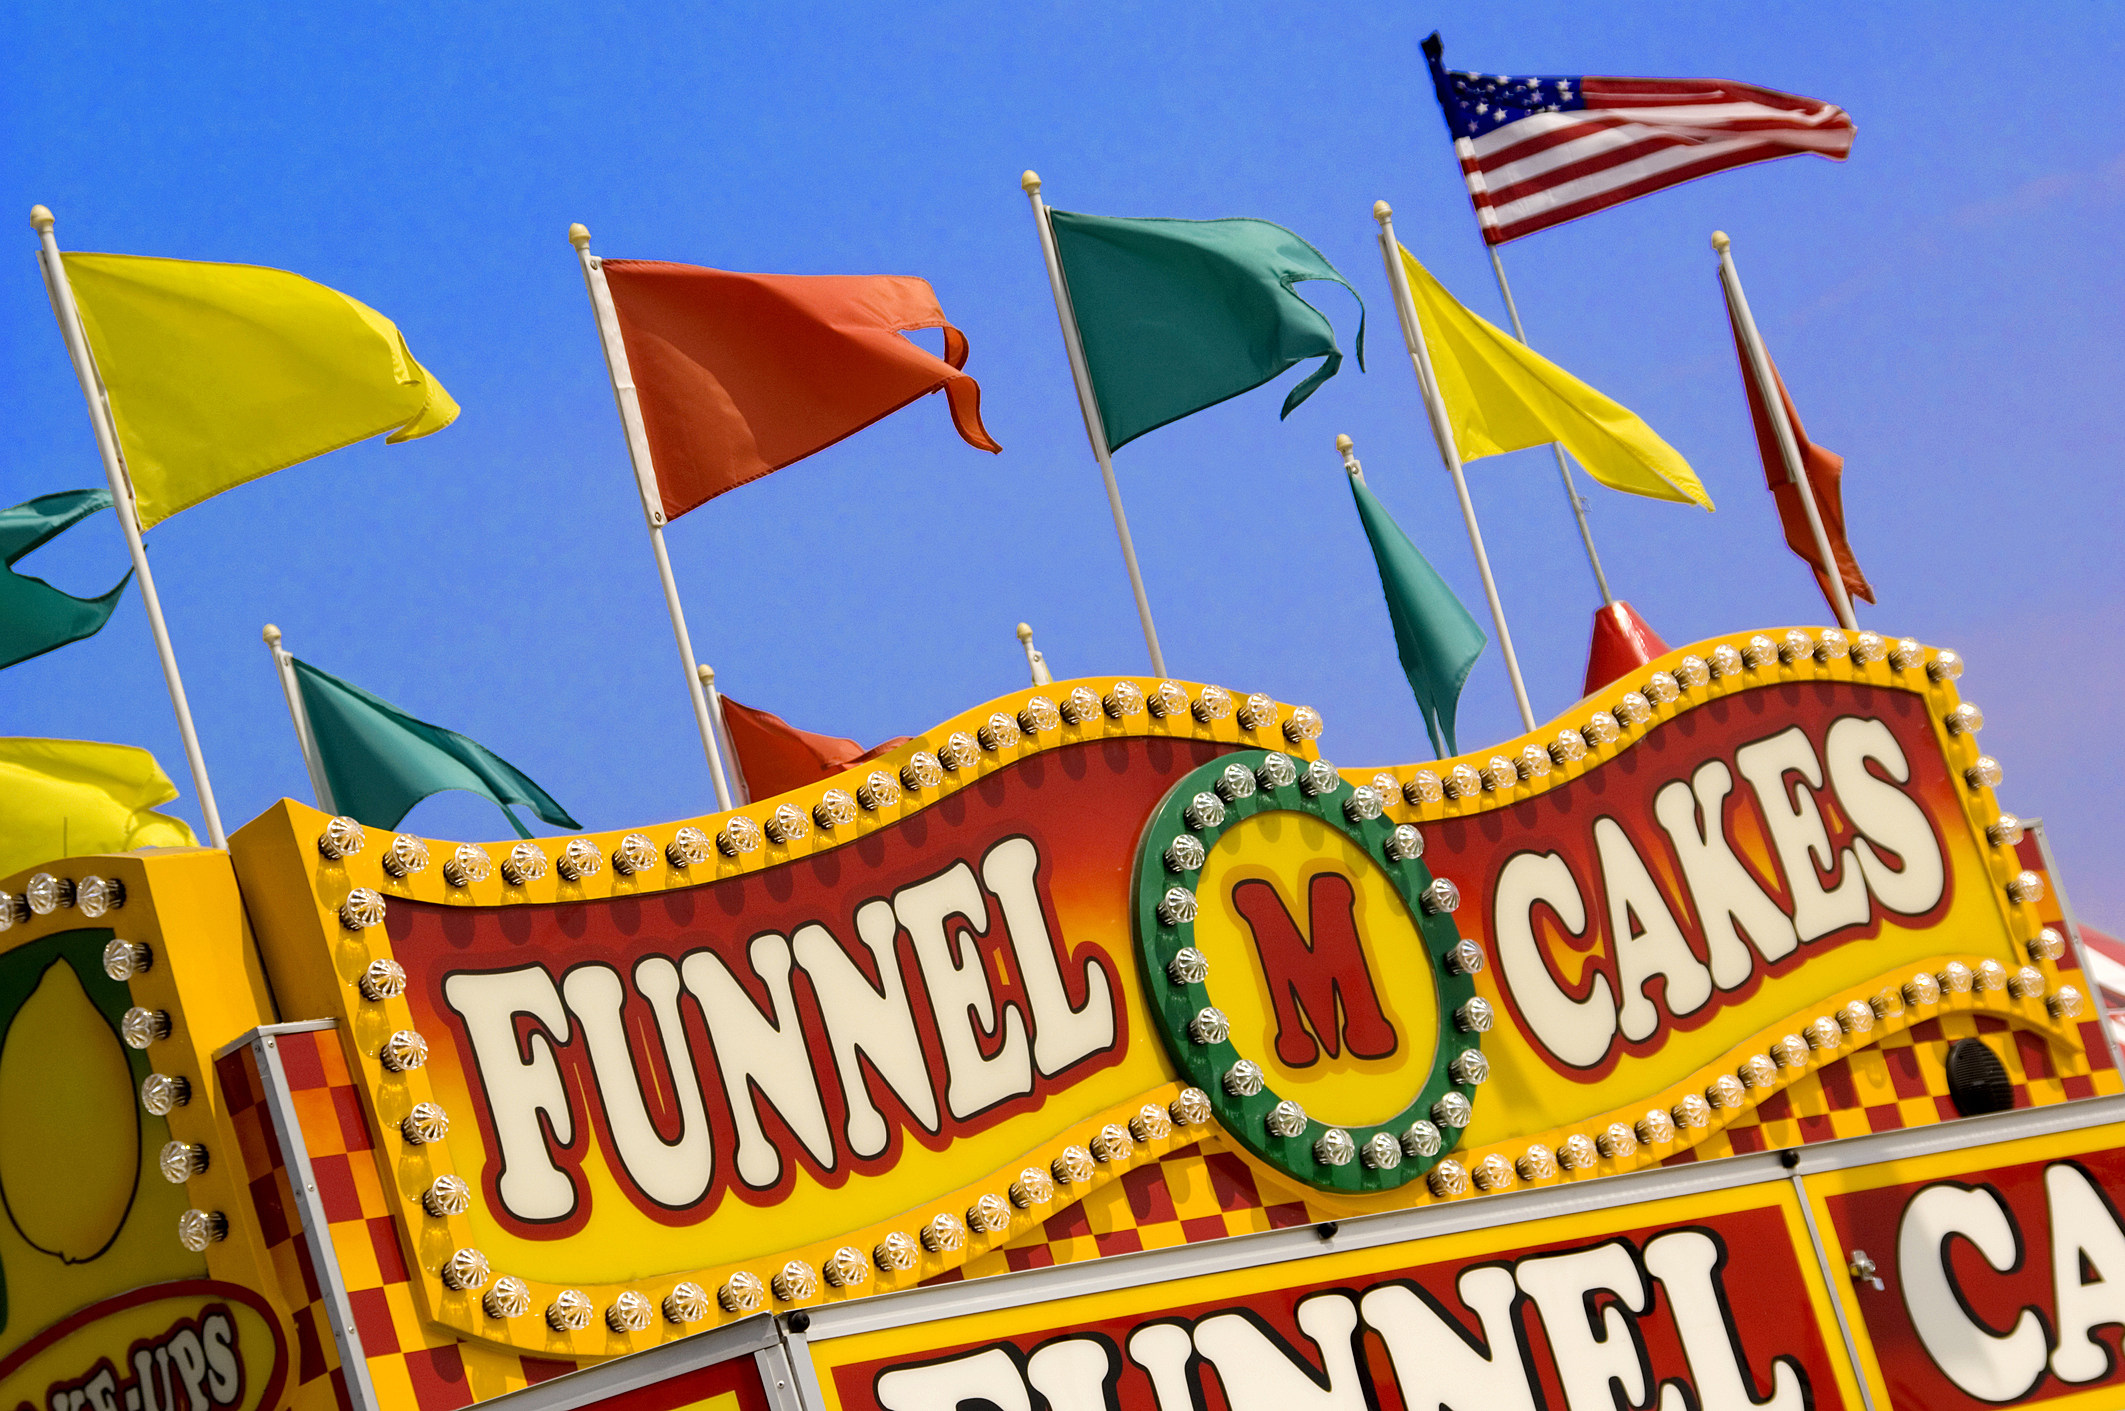 Carnival sign for funnel cake stand